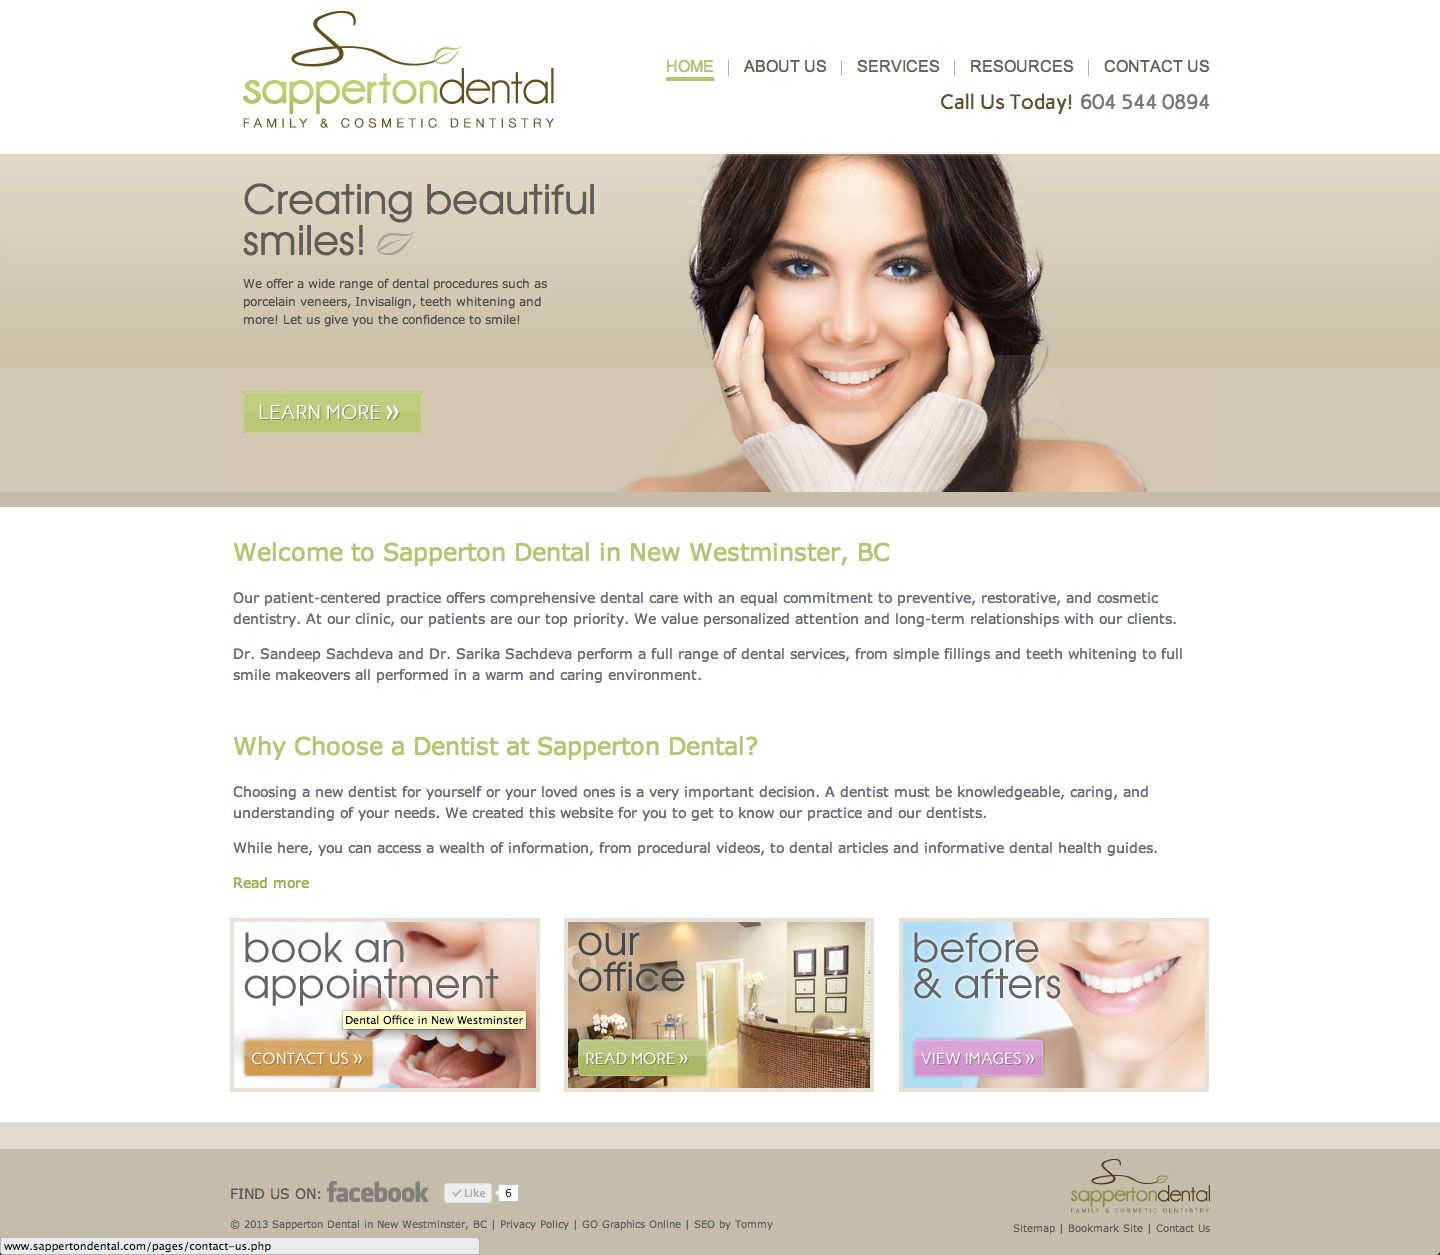 Sapperton Dental Clinic in New Westminster's homepage